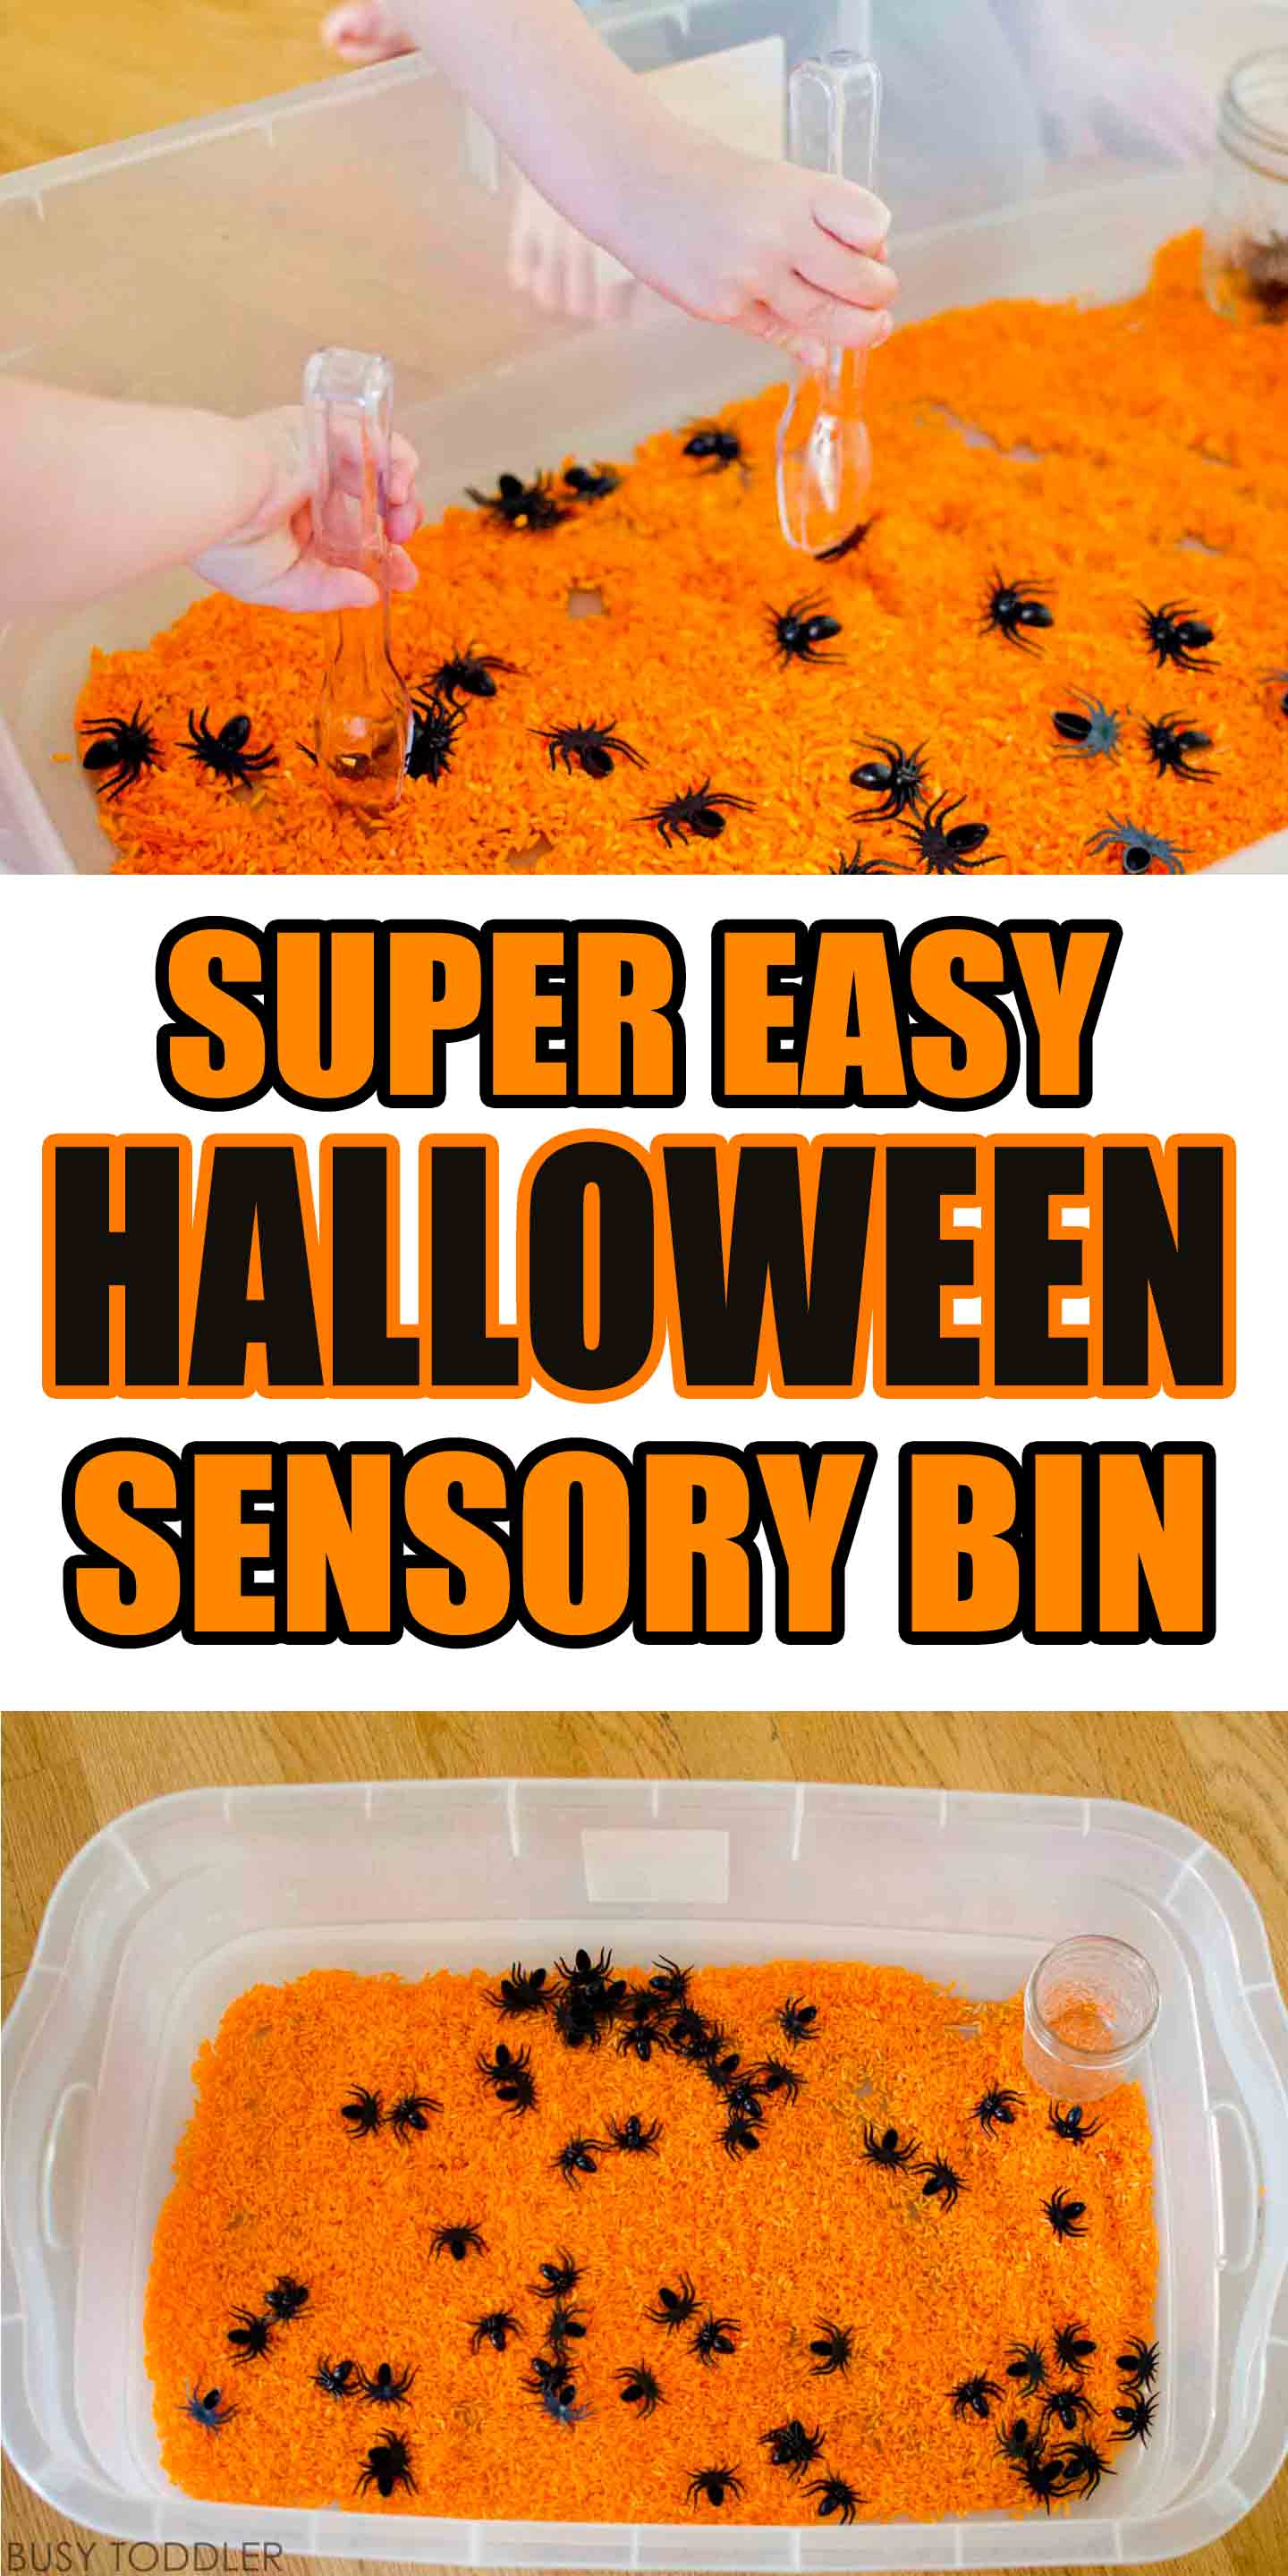 Simple Halloween Sensory Bin - Busy Toddler